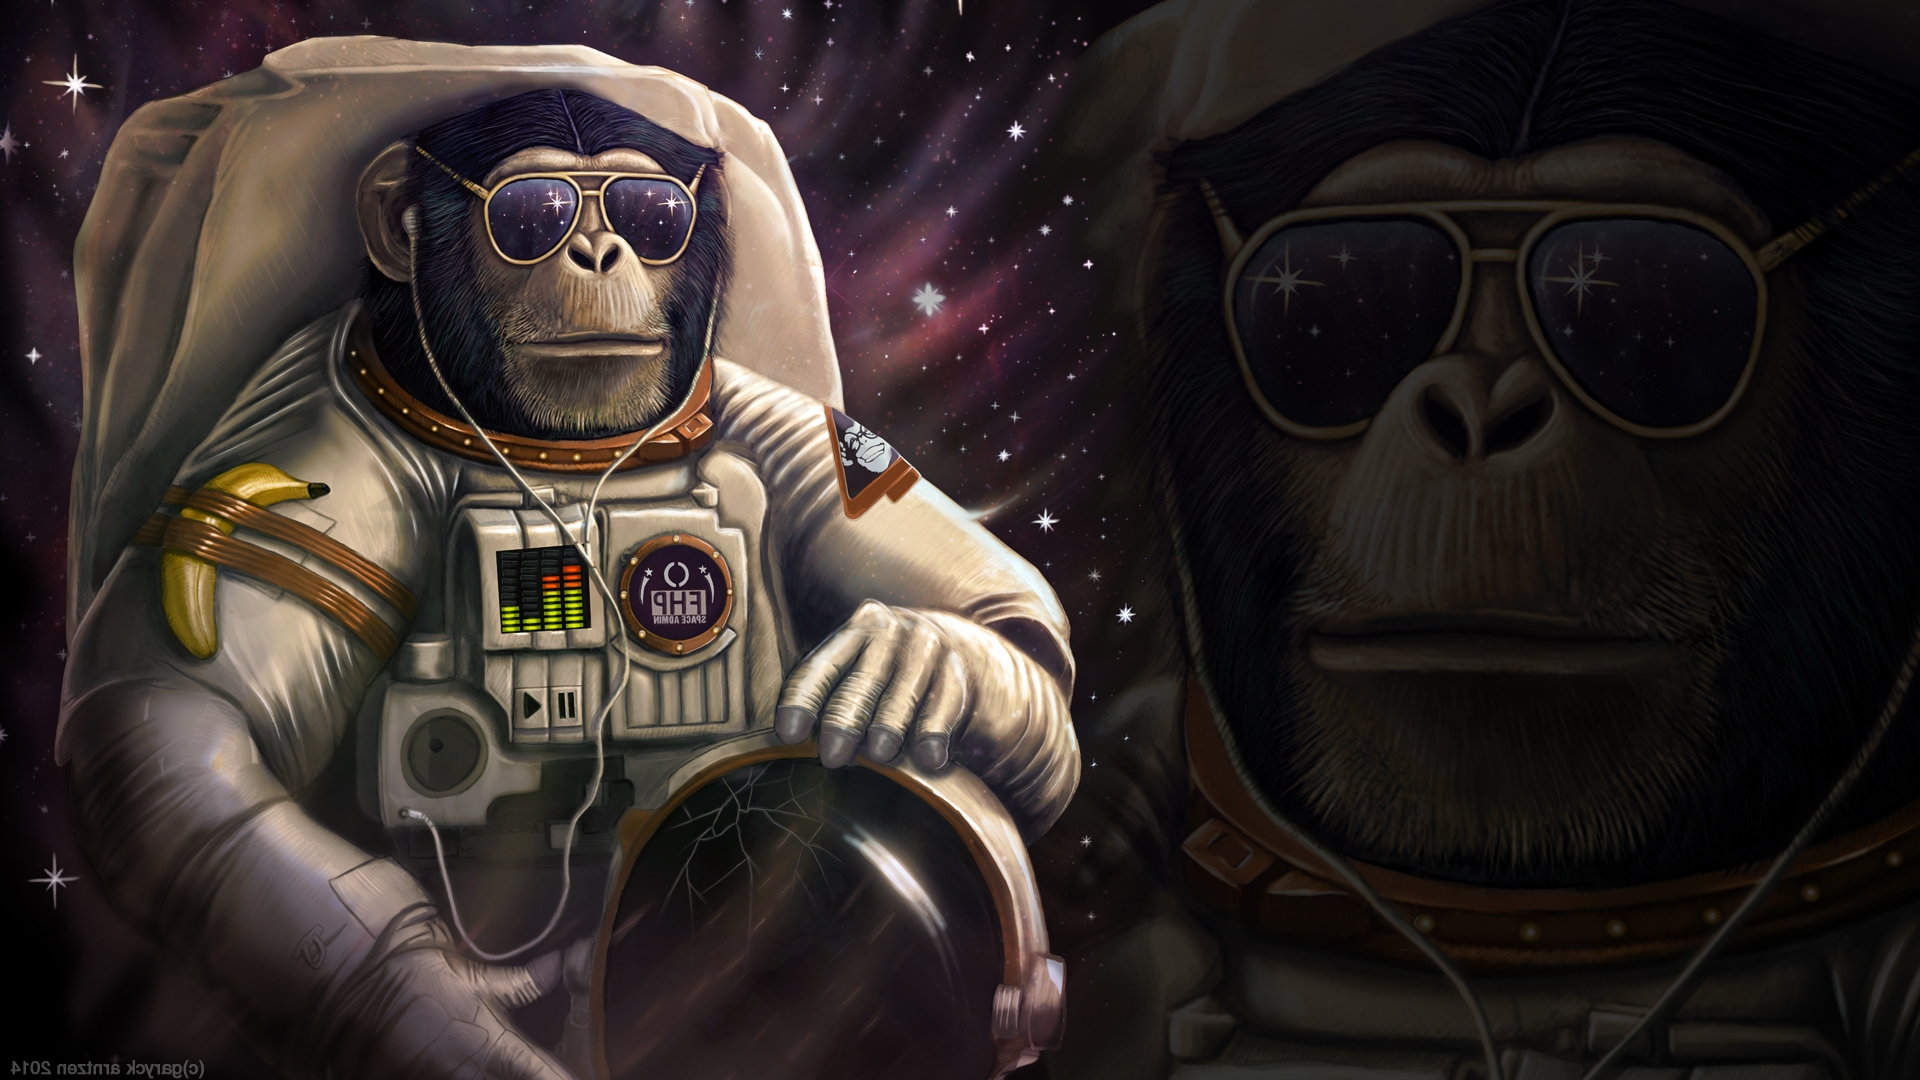 Images of astronauts with space wallpaper spacehero hd astronaut wallpaper wallpapersafari publicscrutiny Choice Image